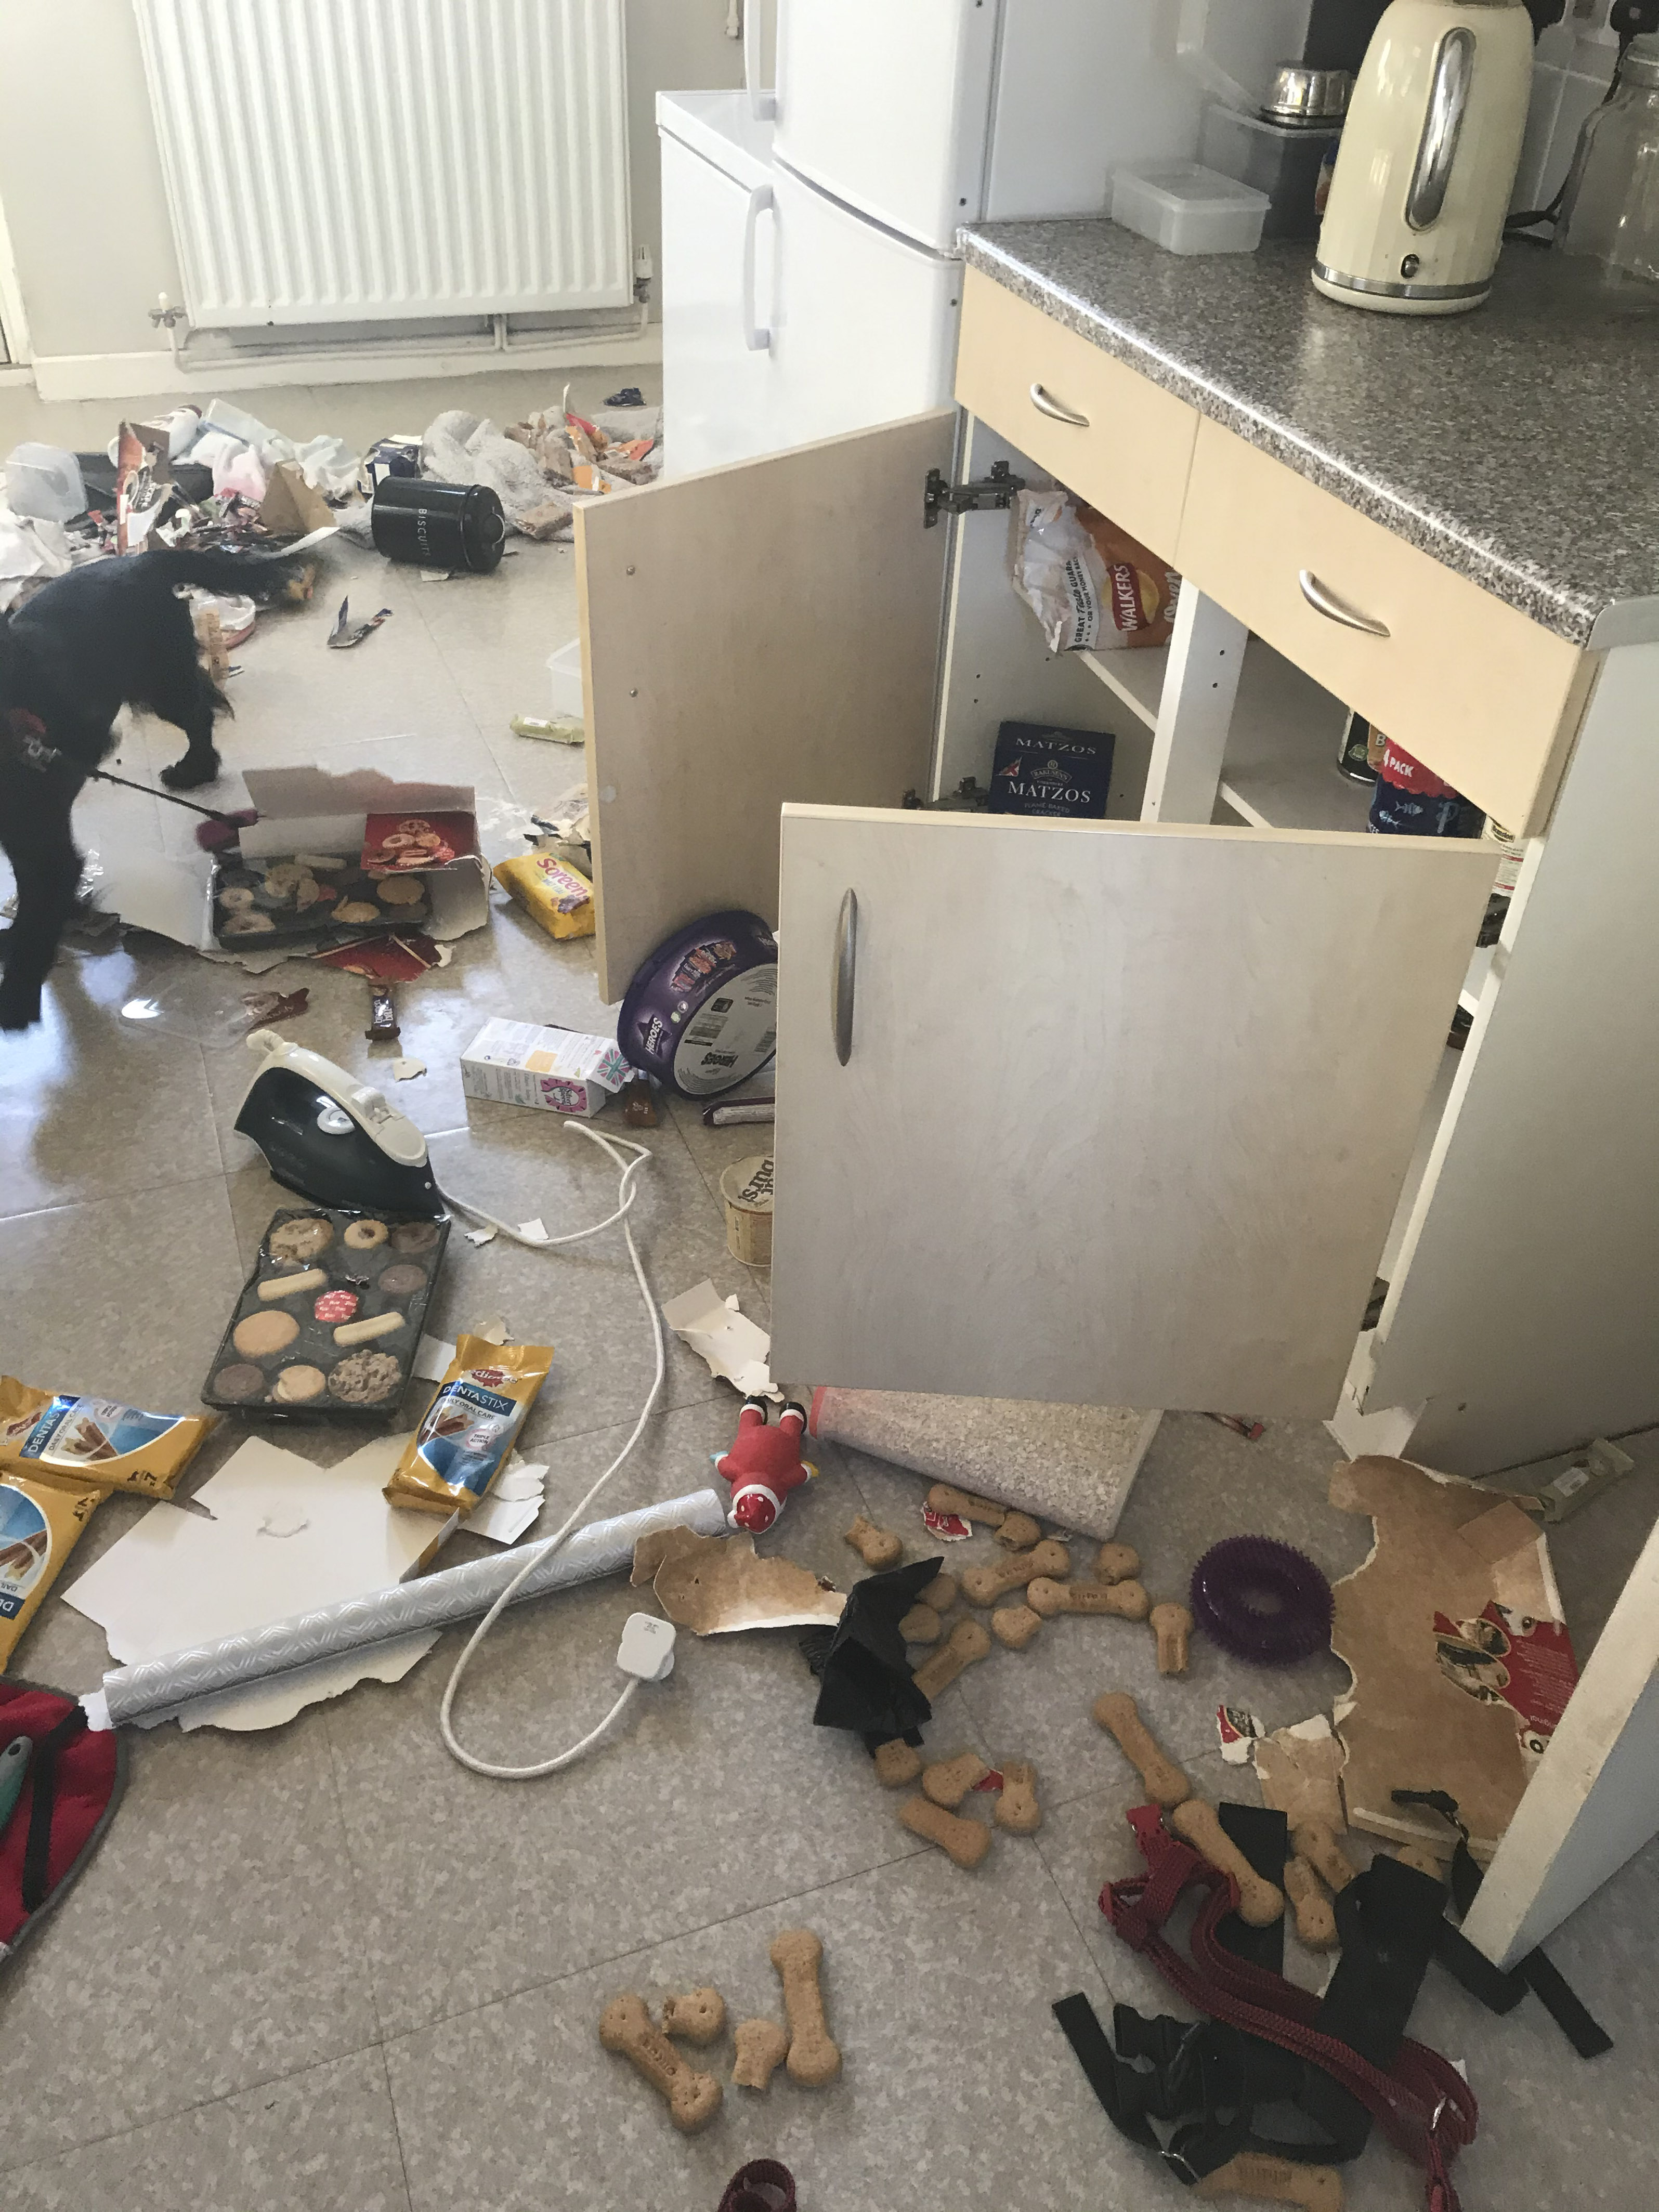 Kitchen covered in food and rubbish after dog goes on a rampage